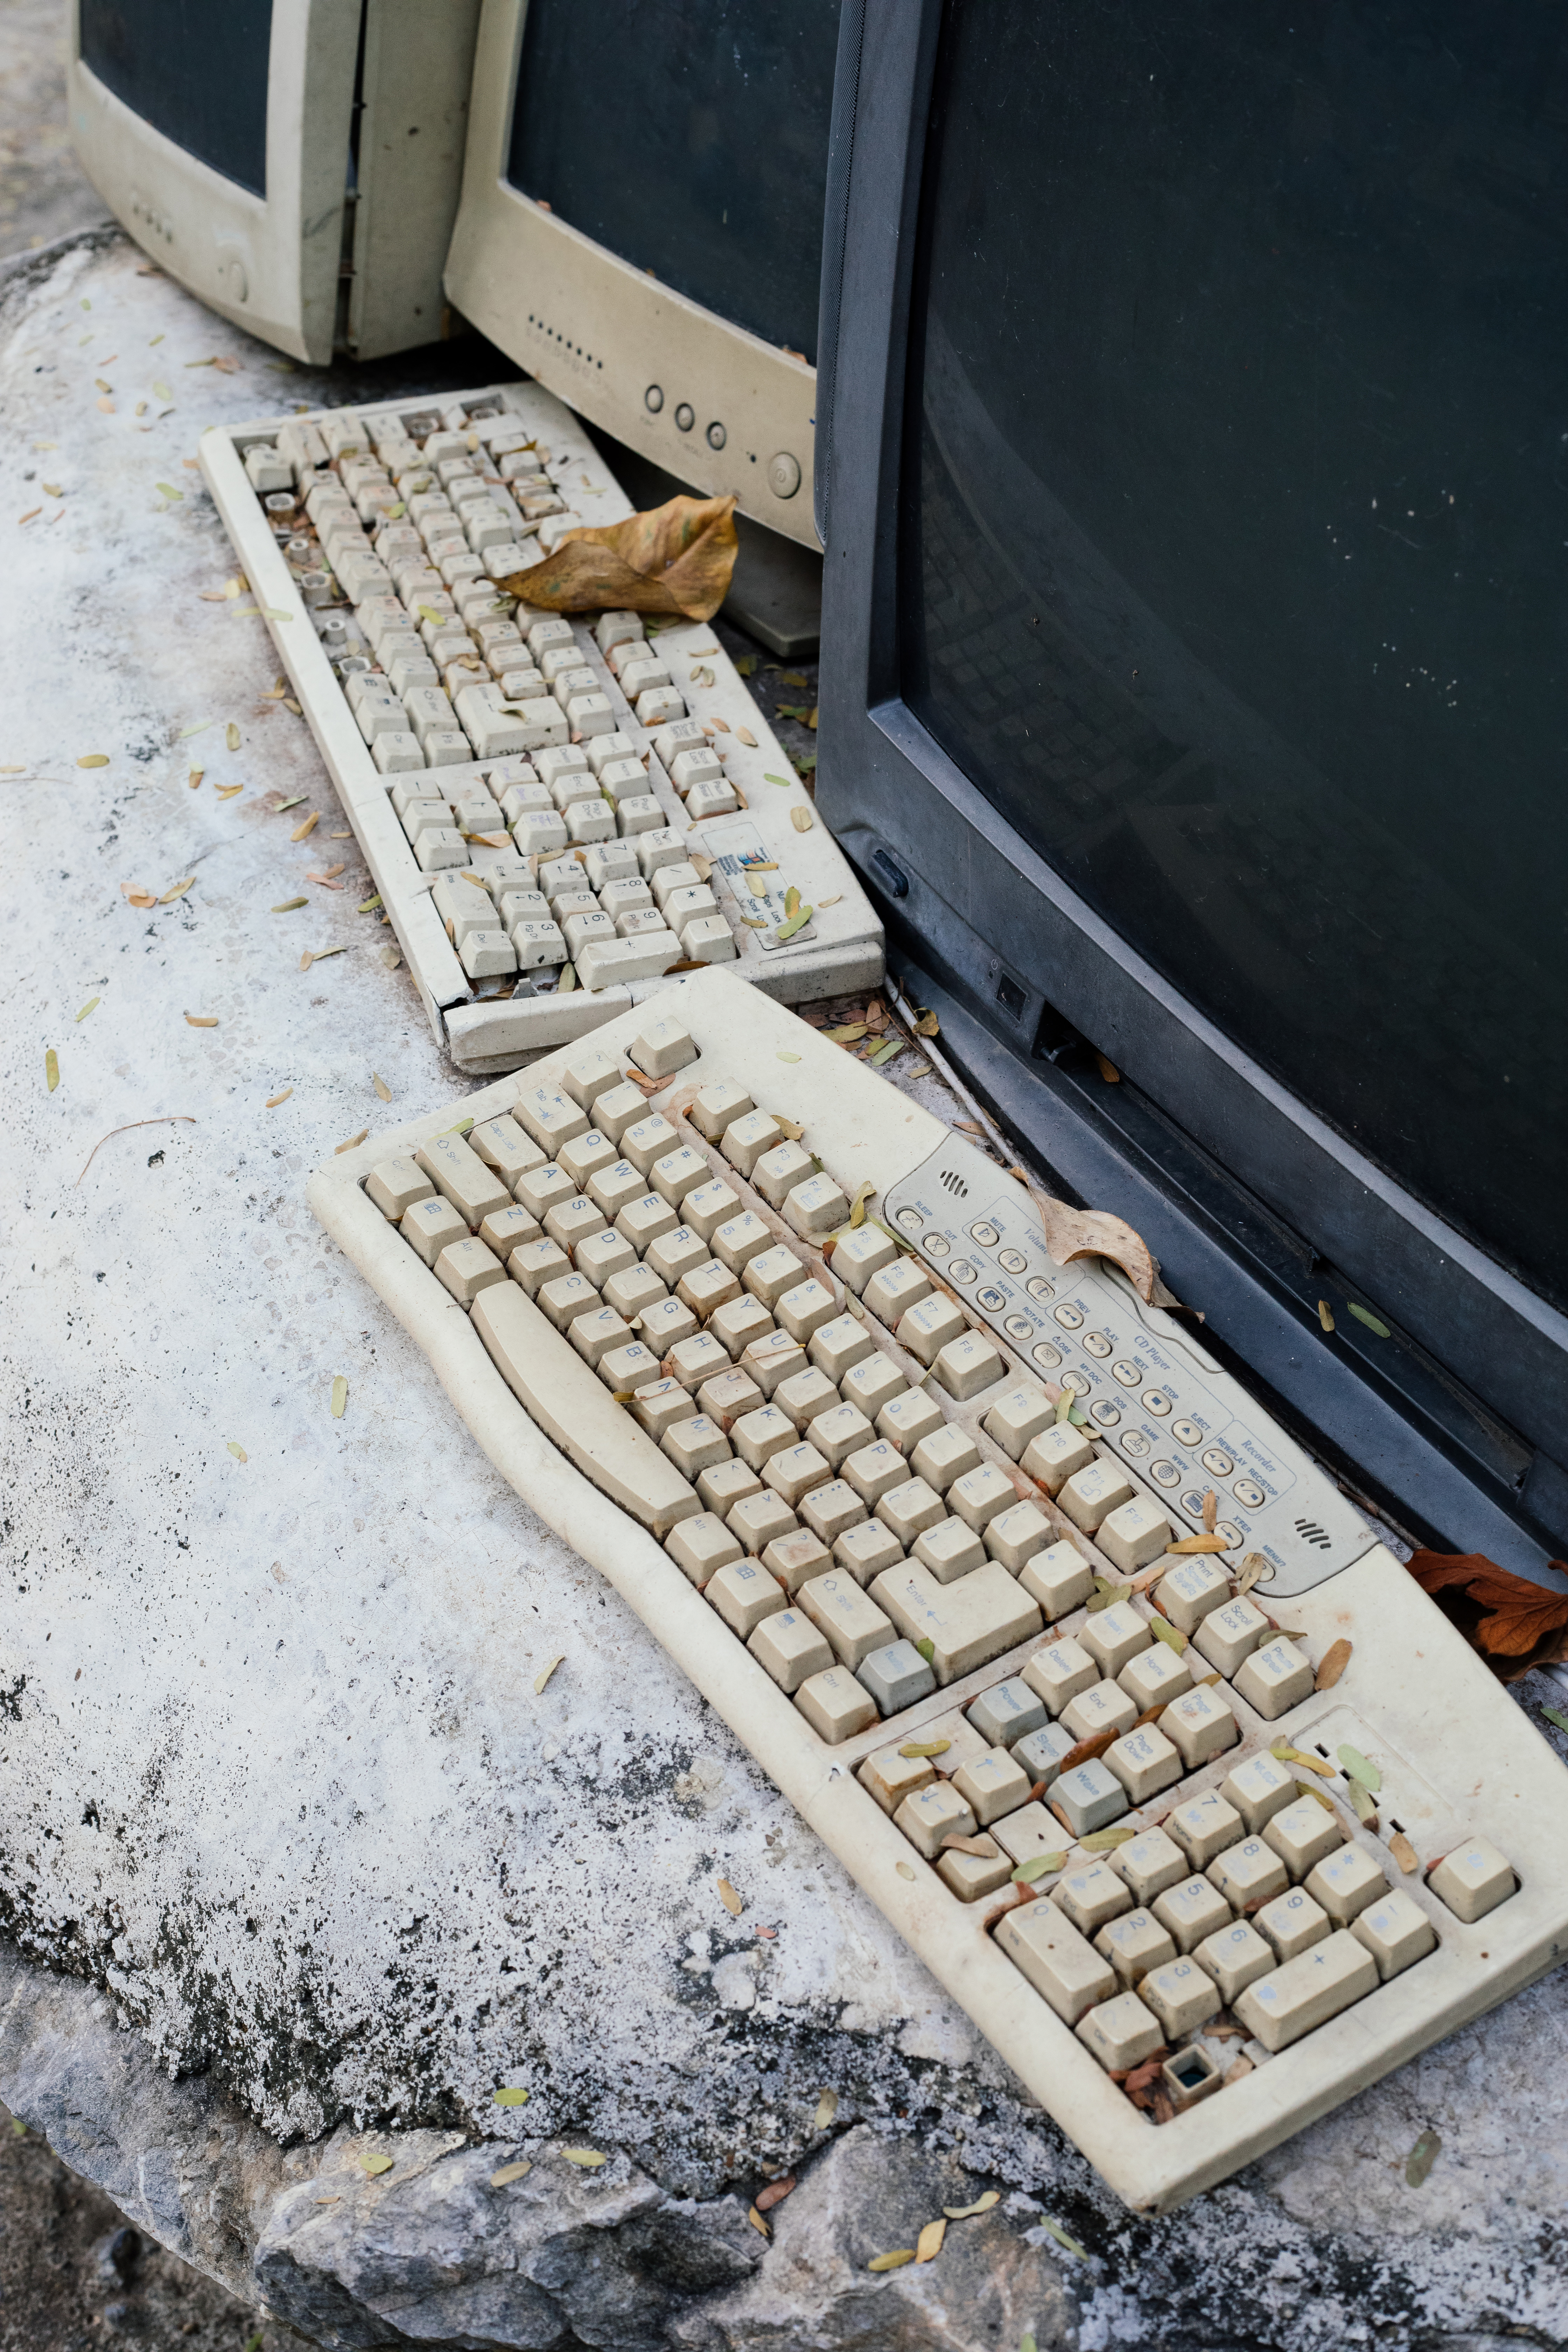 Broken keyboards and monitors on top of stone in a technology graveyard.